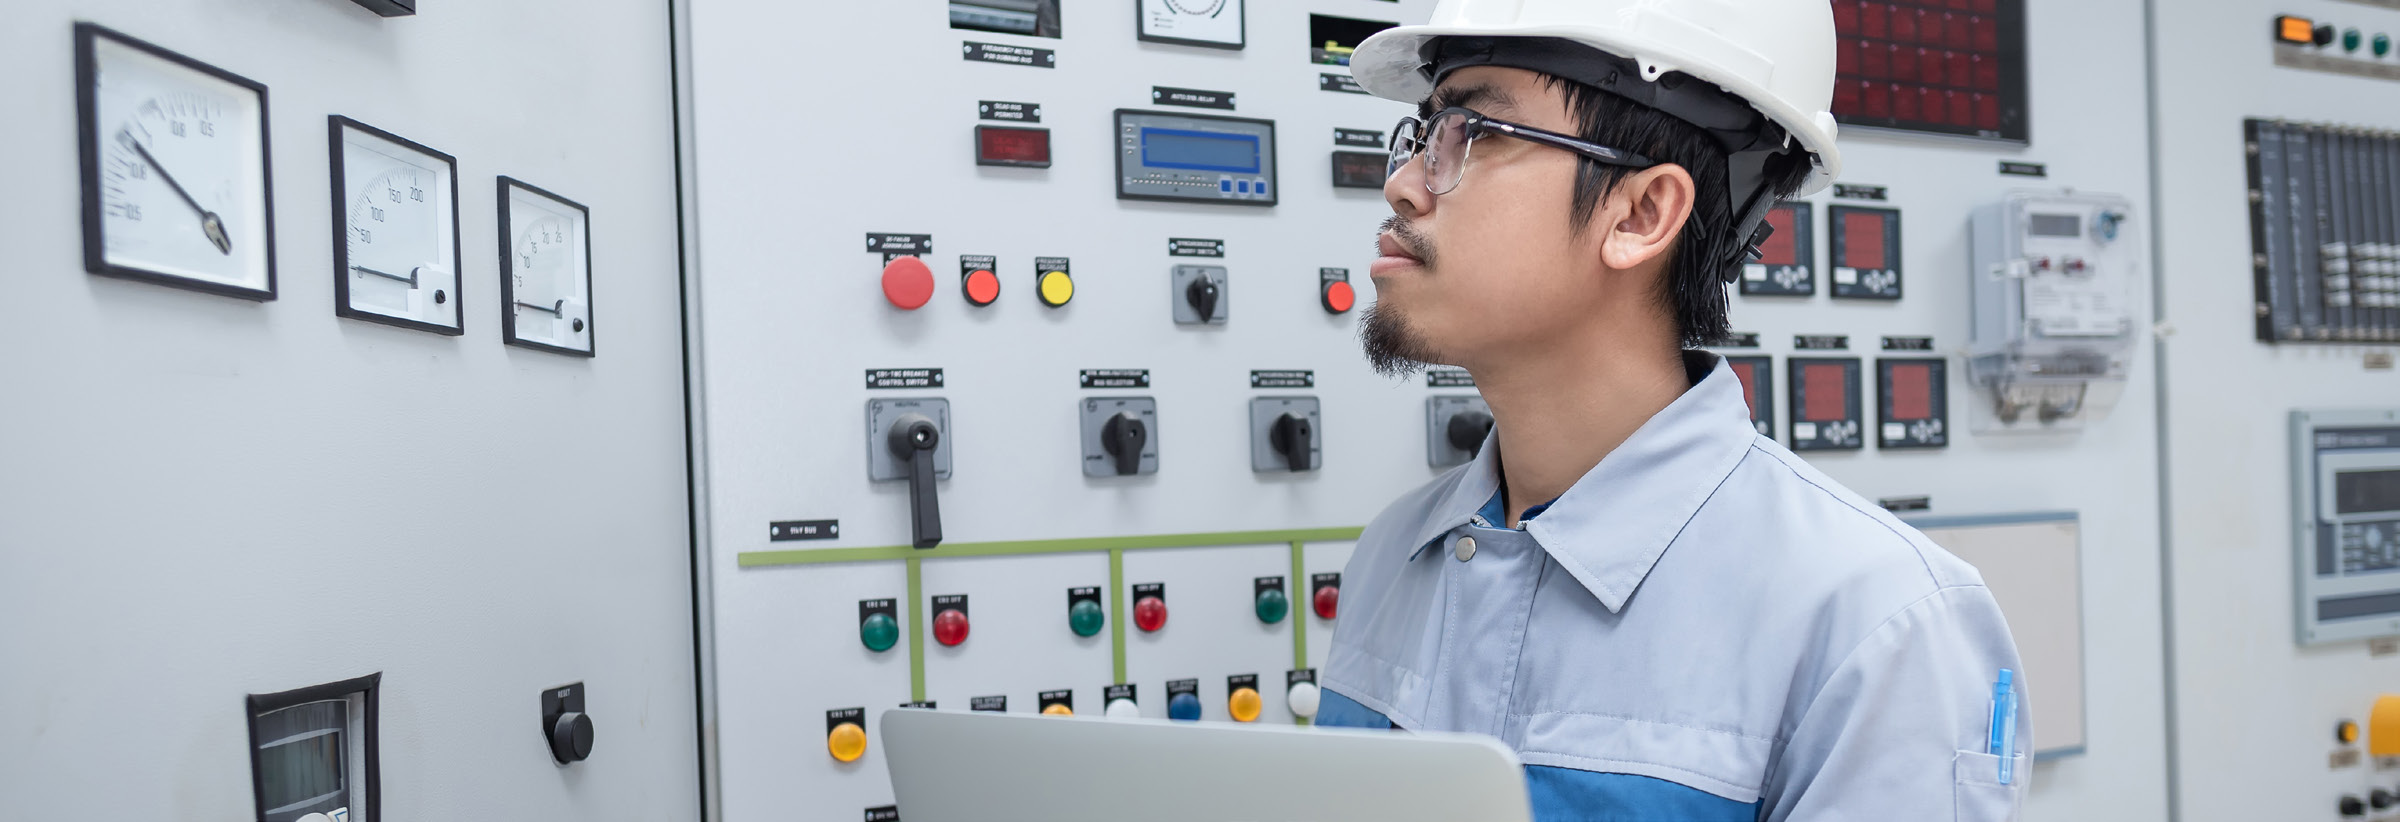 Electrical Specialist Image